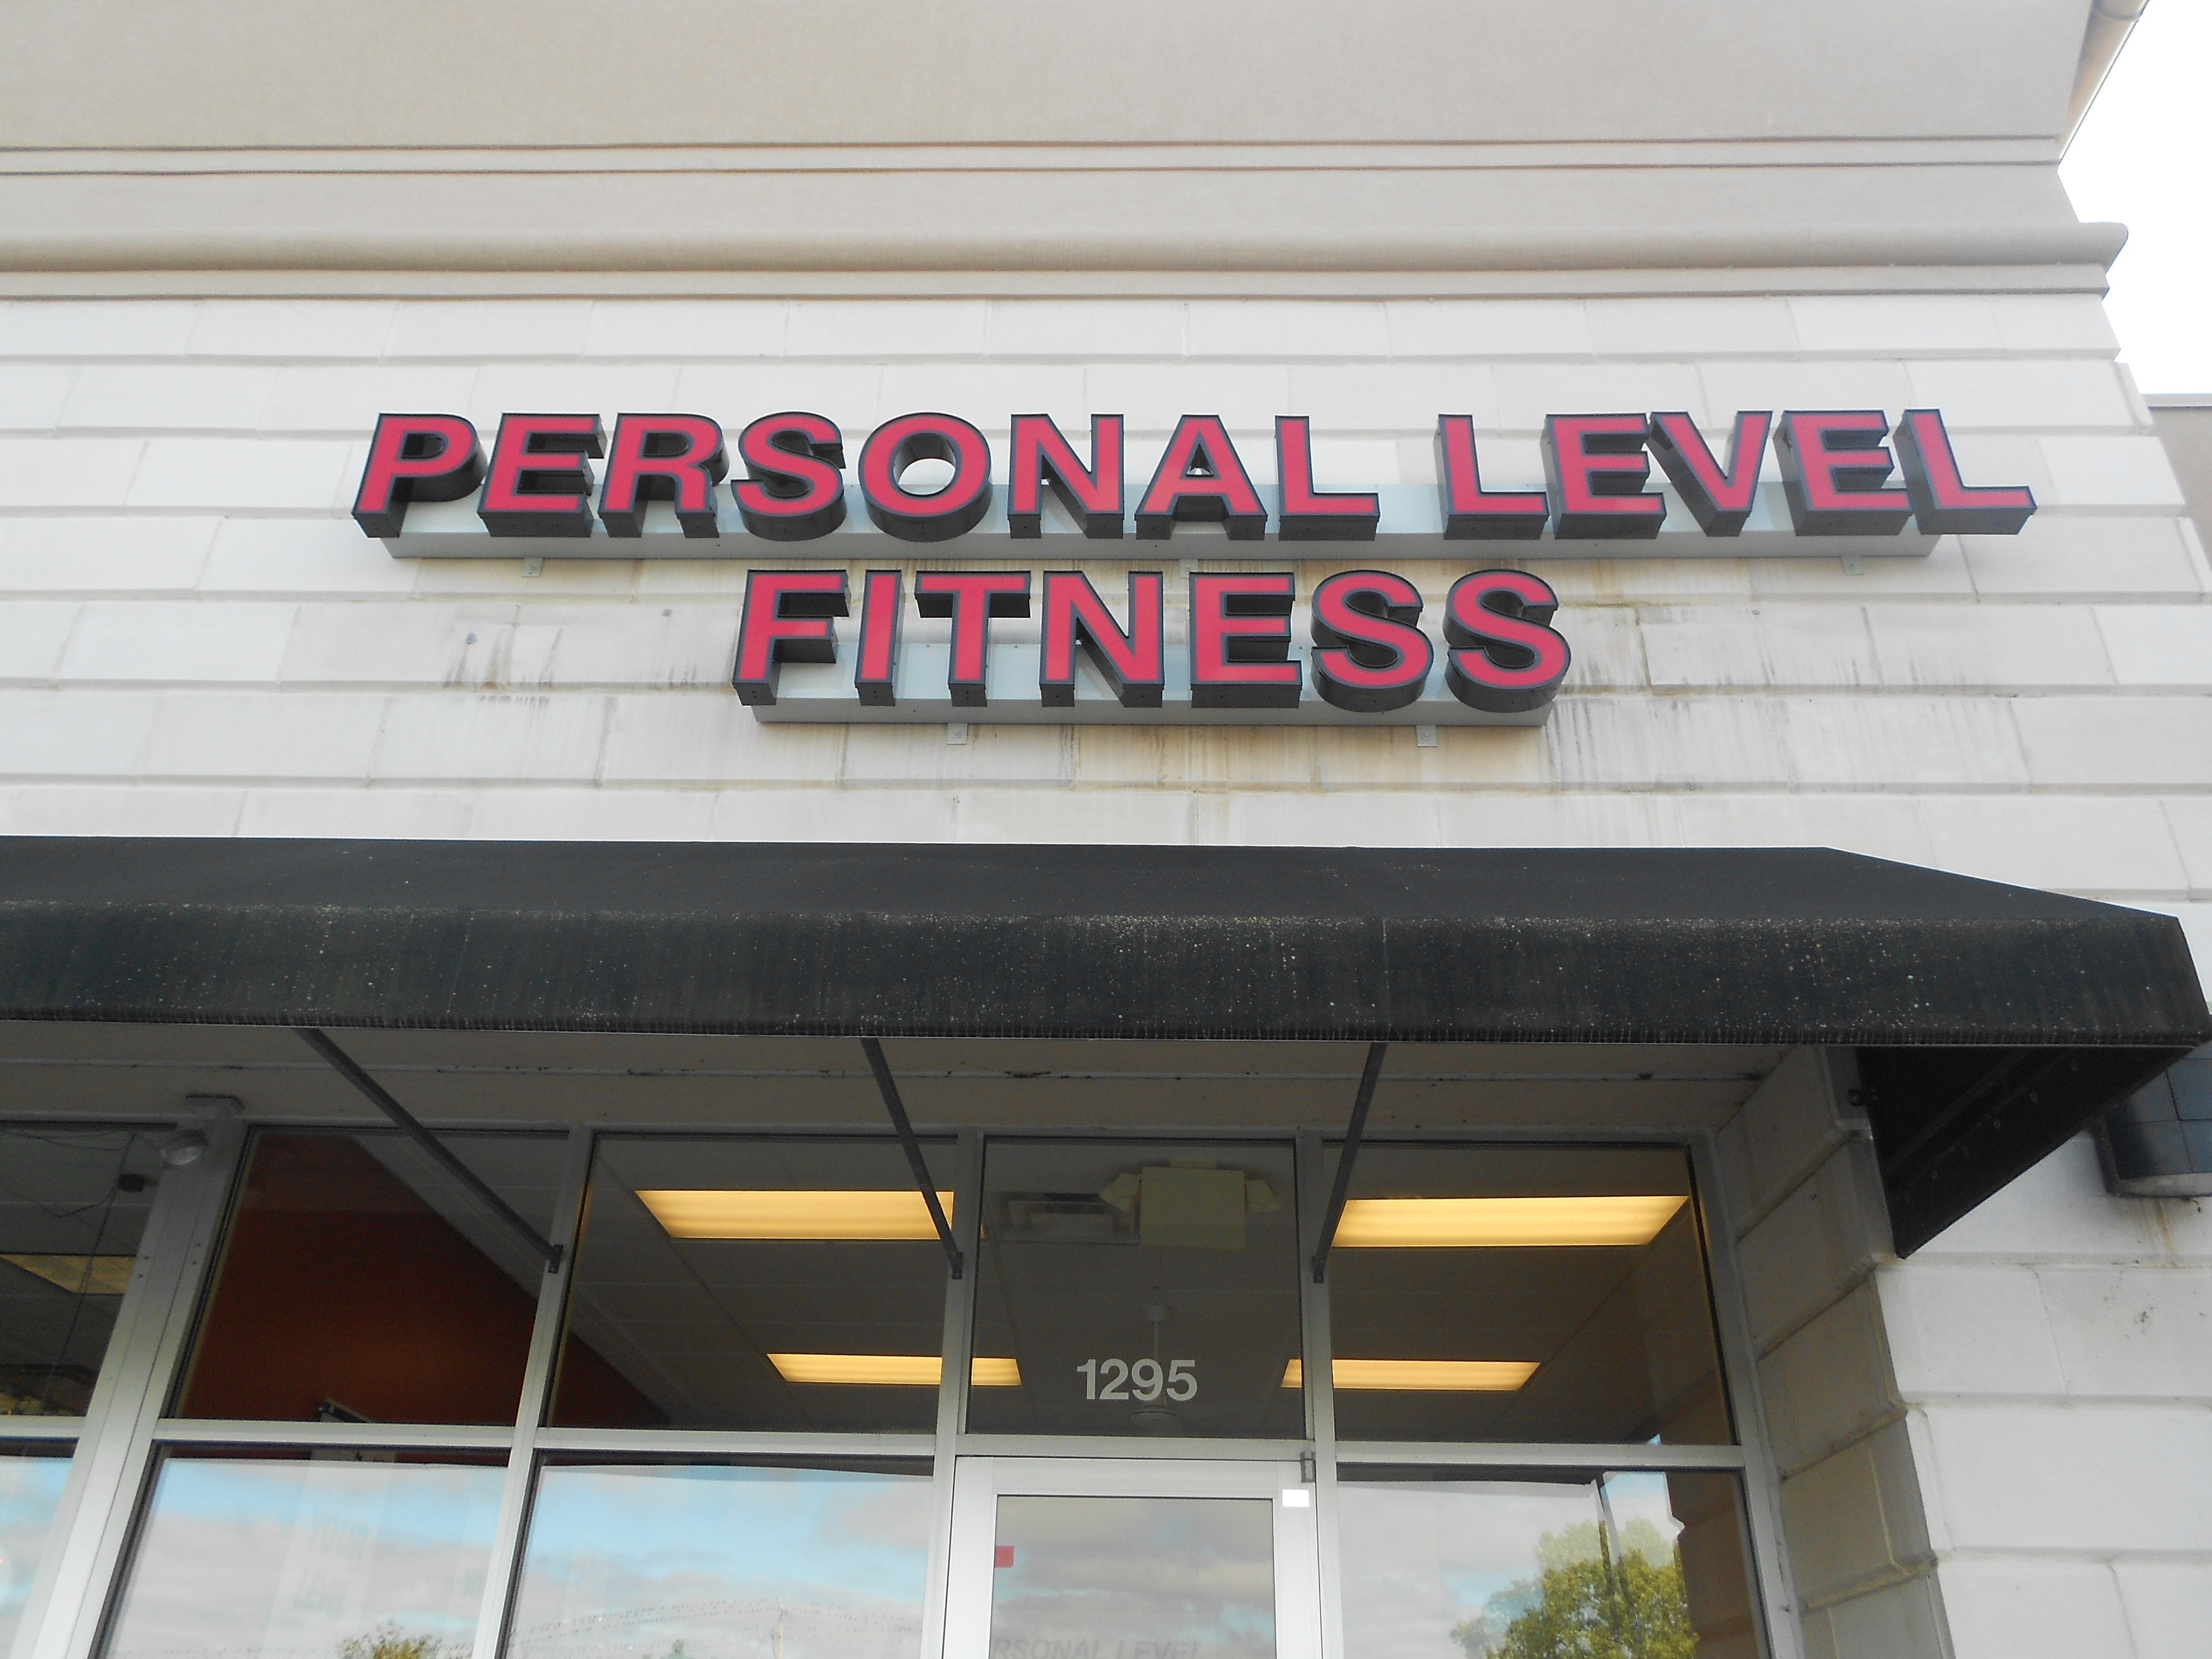 Personal Level Fitness image 4